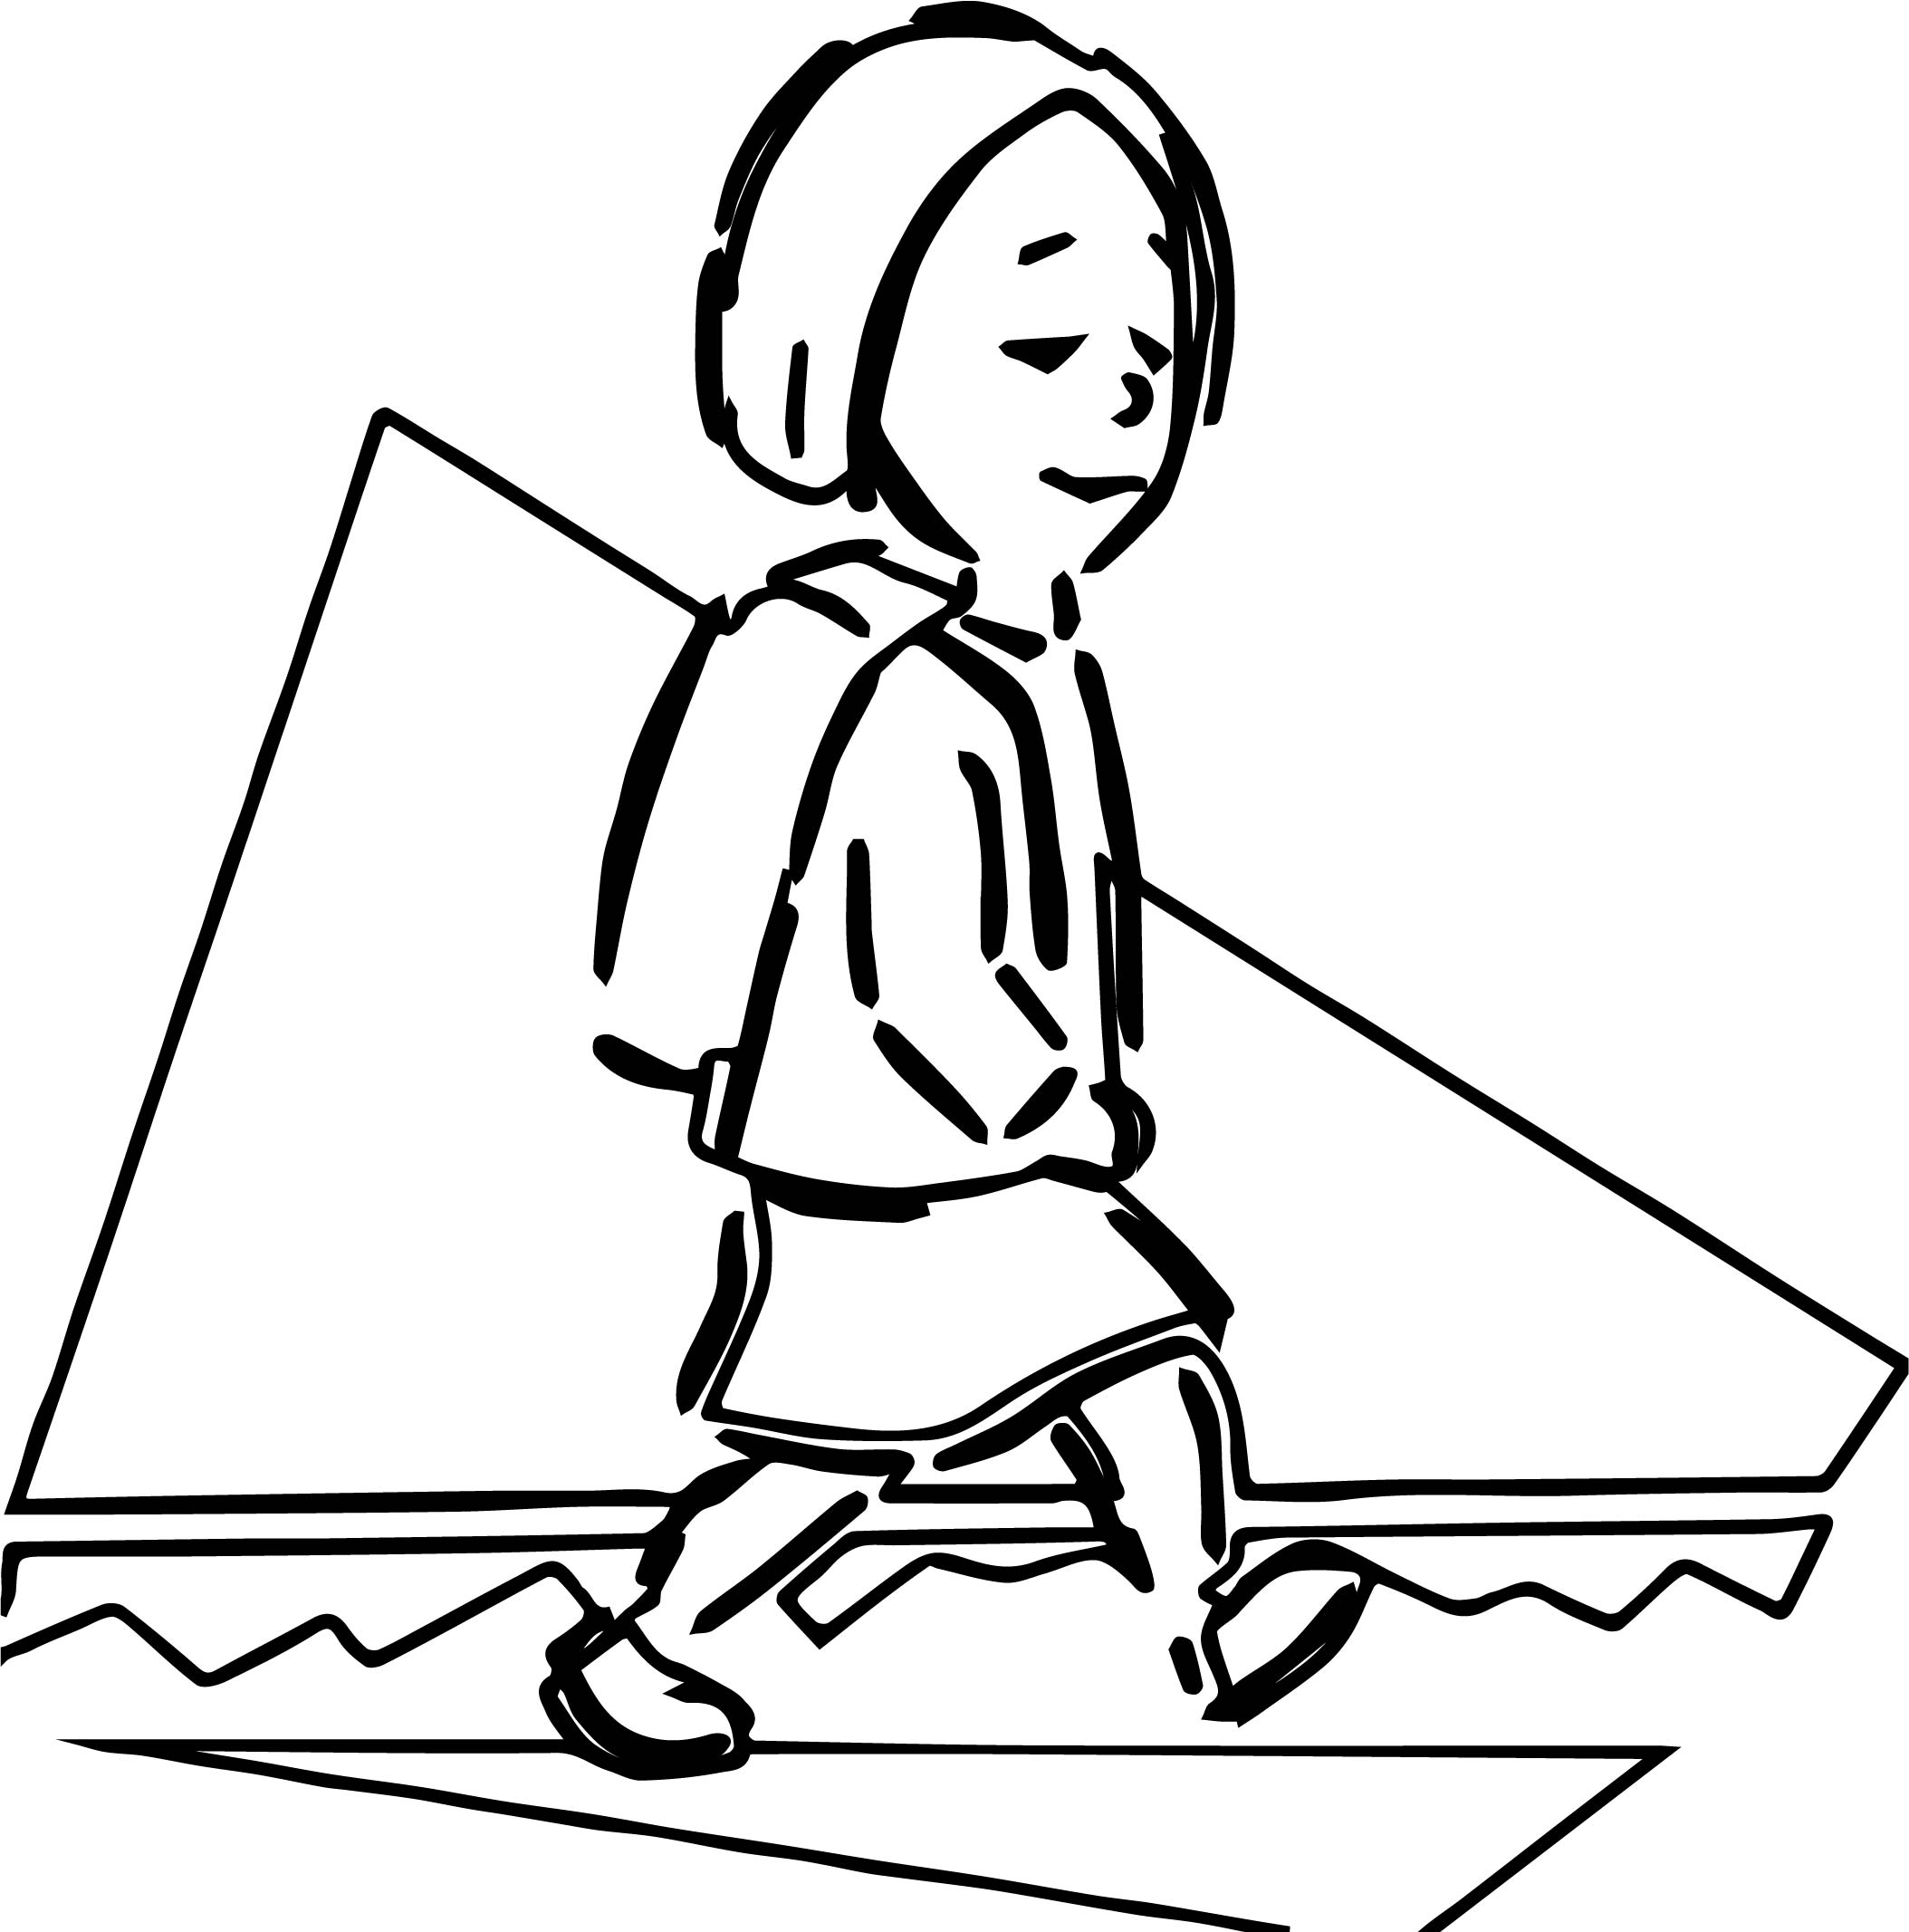 Backpack Coloring Page Any Kid With Backpack Coloring Page Wecoloringpage